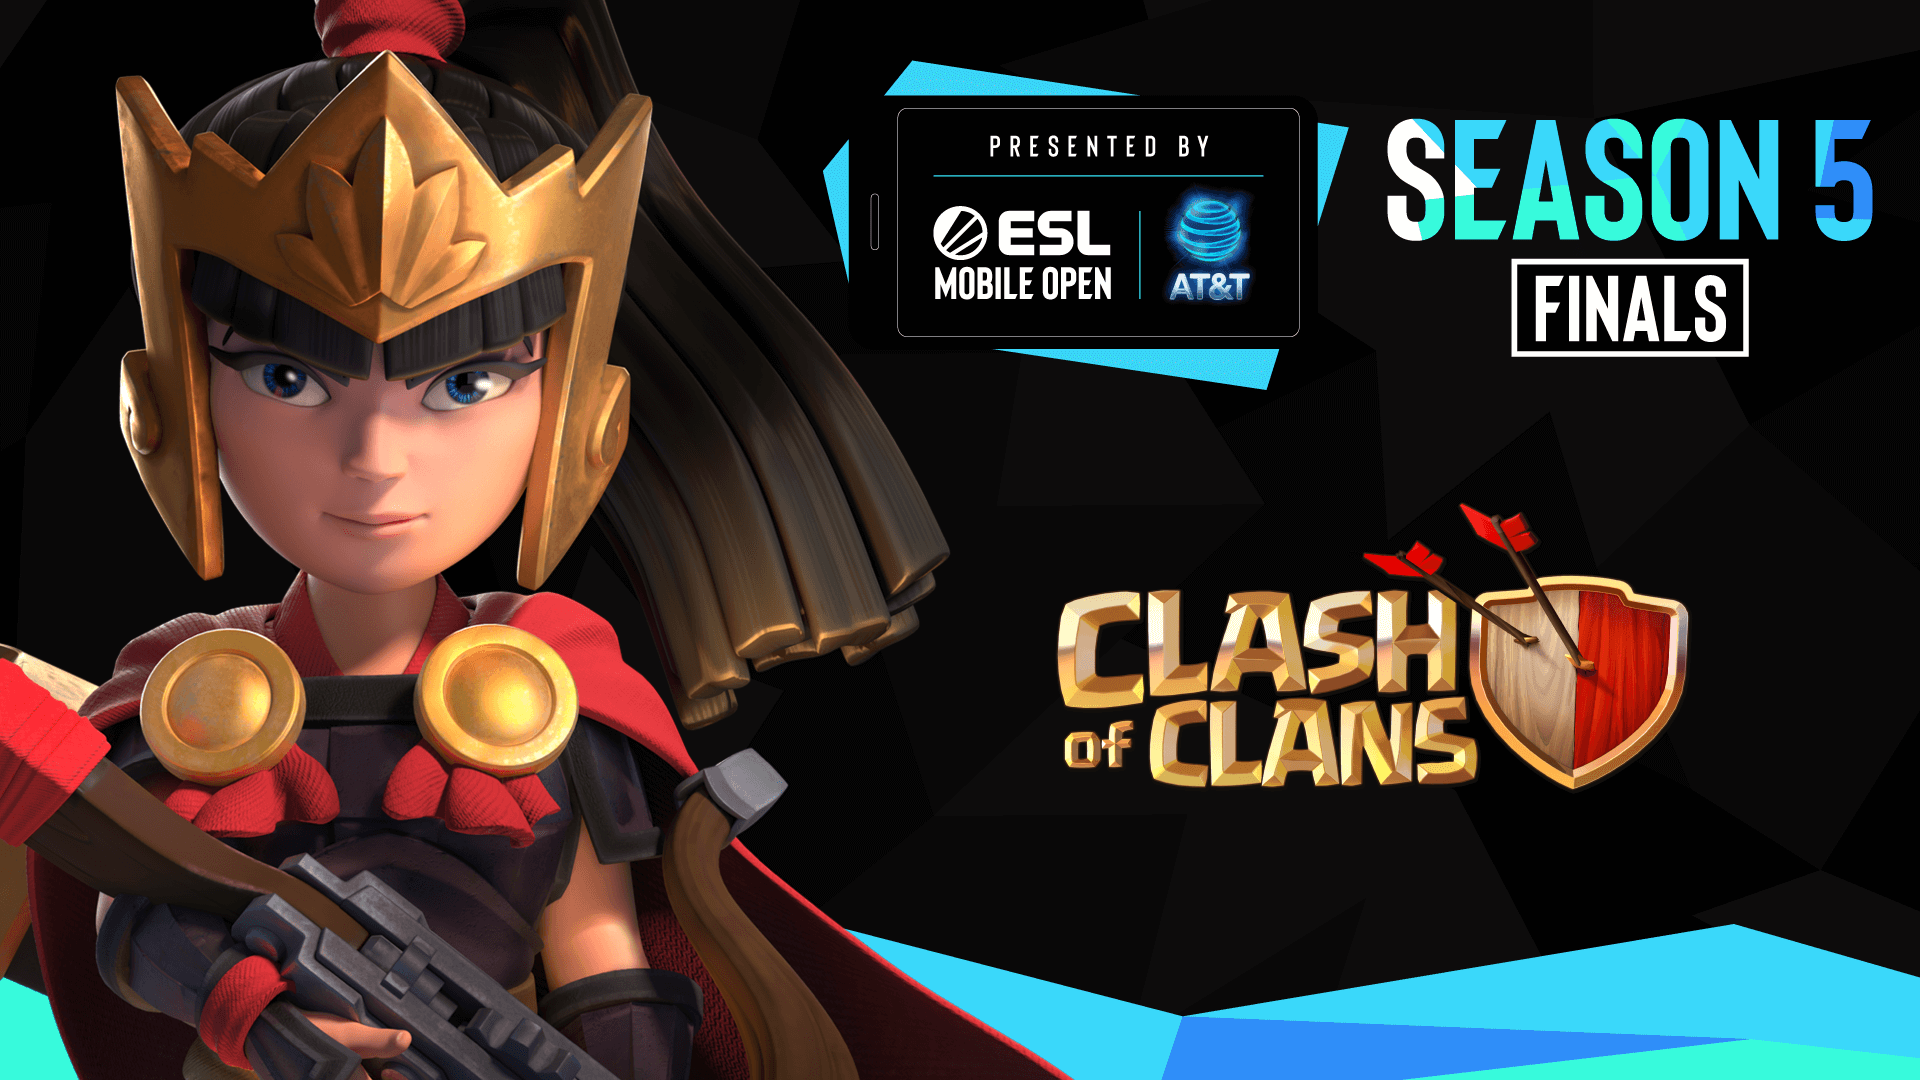 ESL Mobile Open Season 5 Finals – Clash of Clans